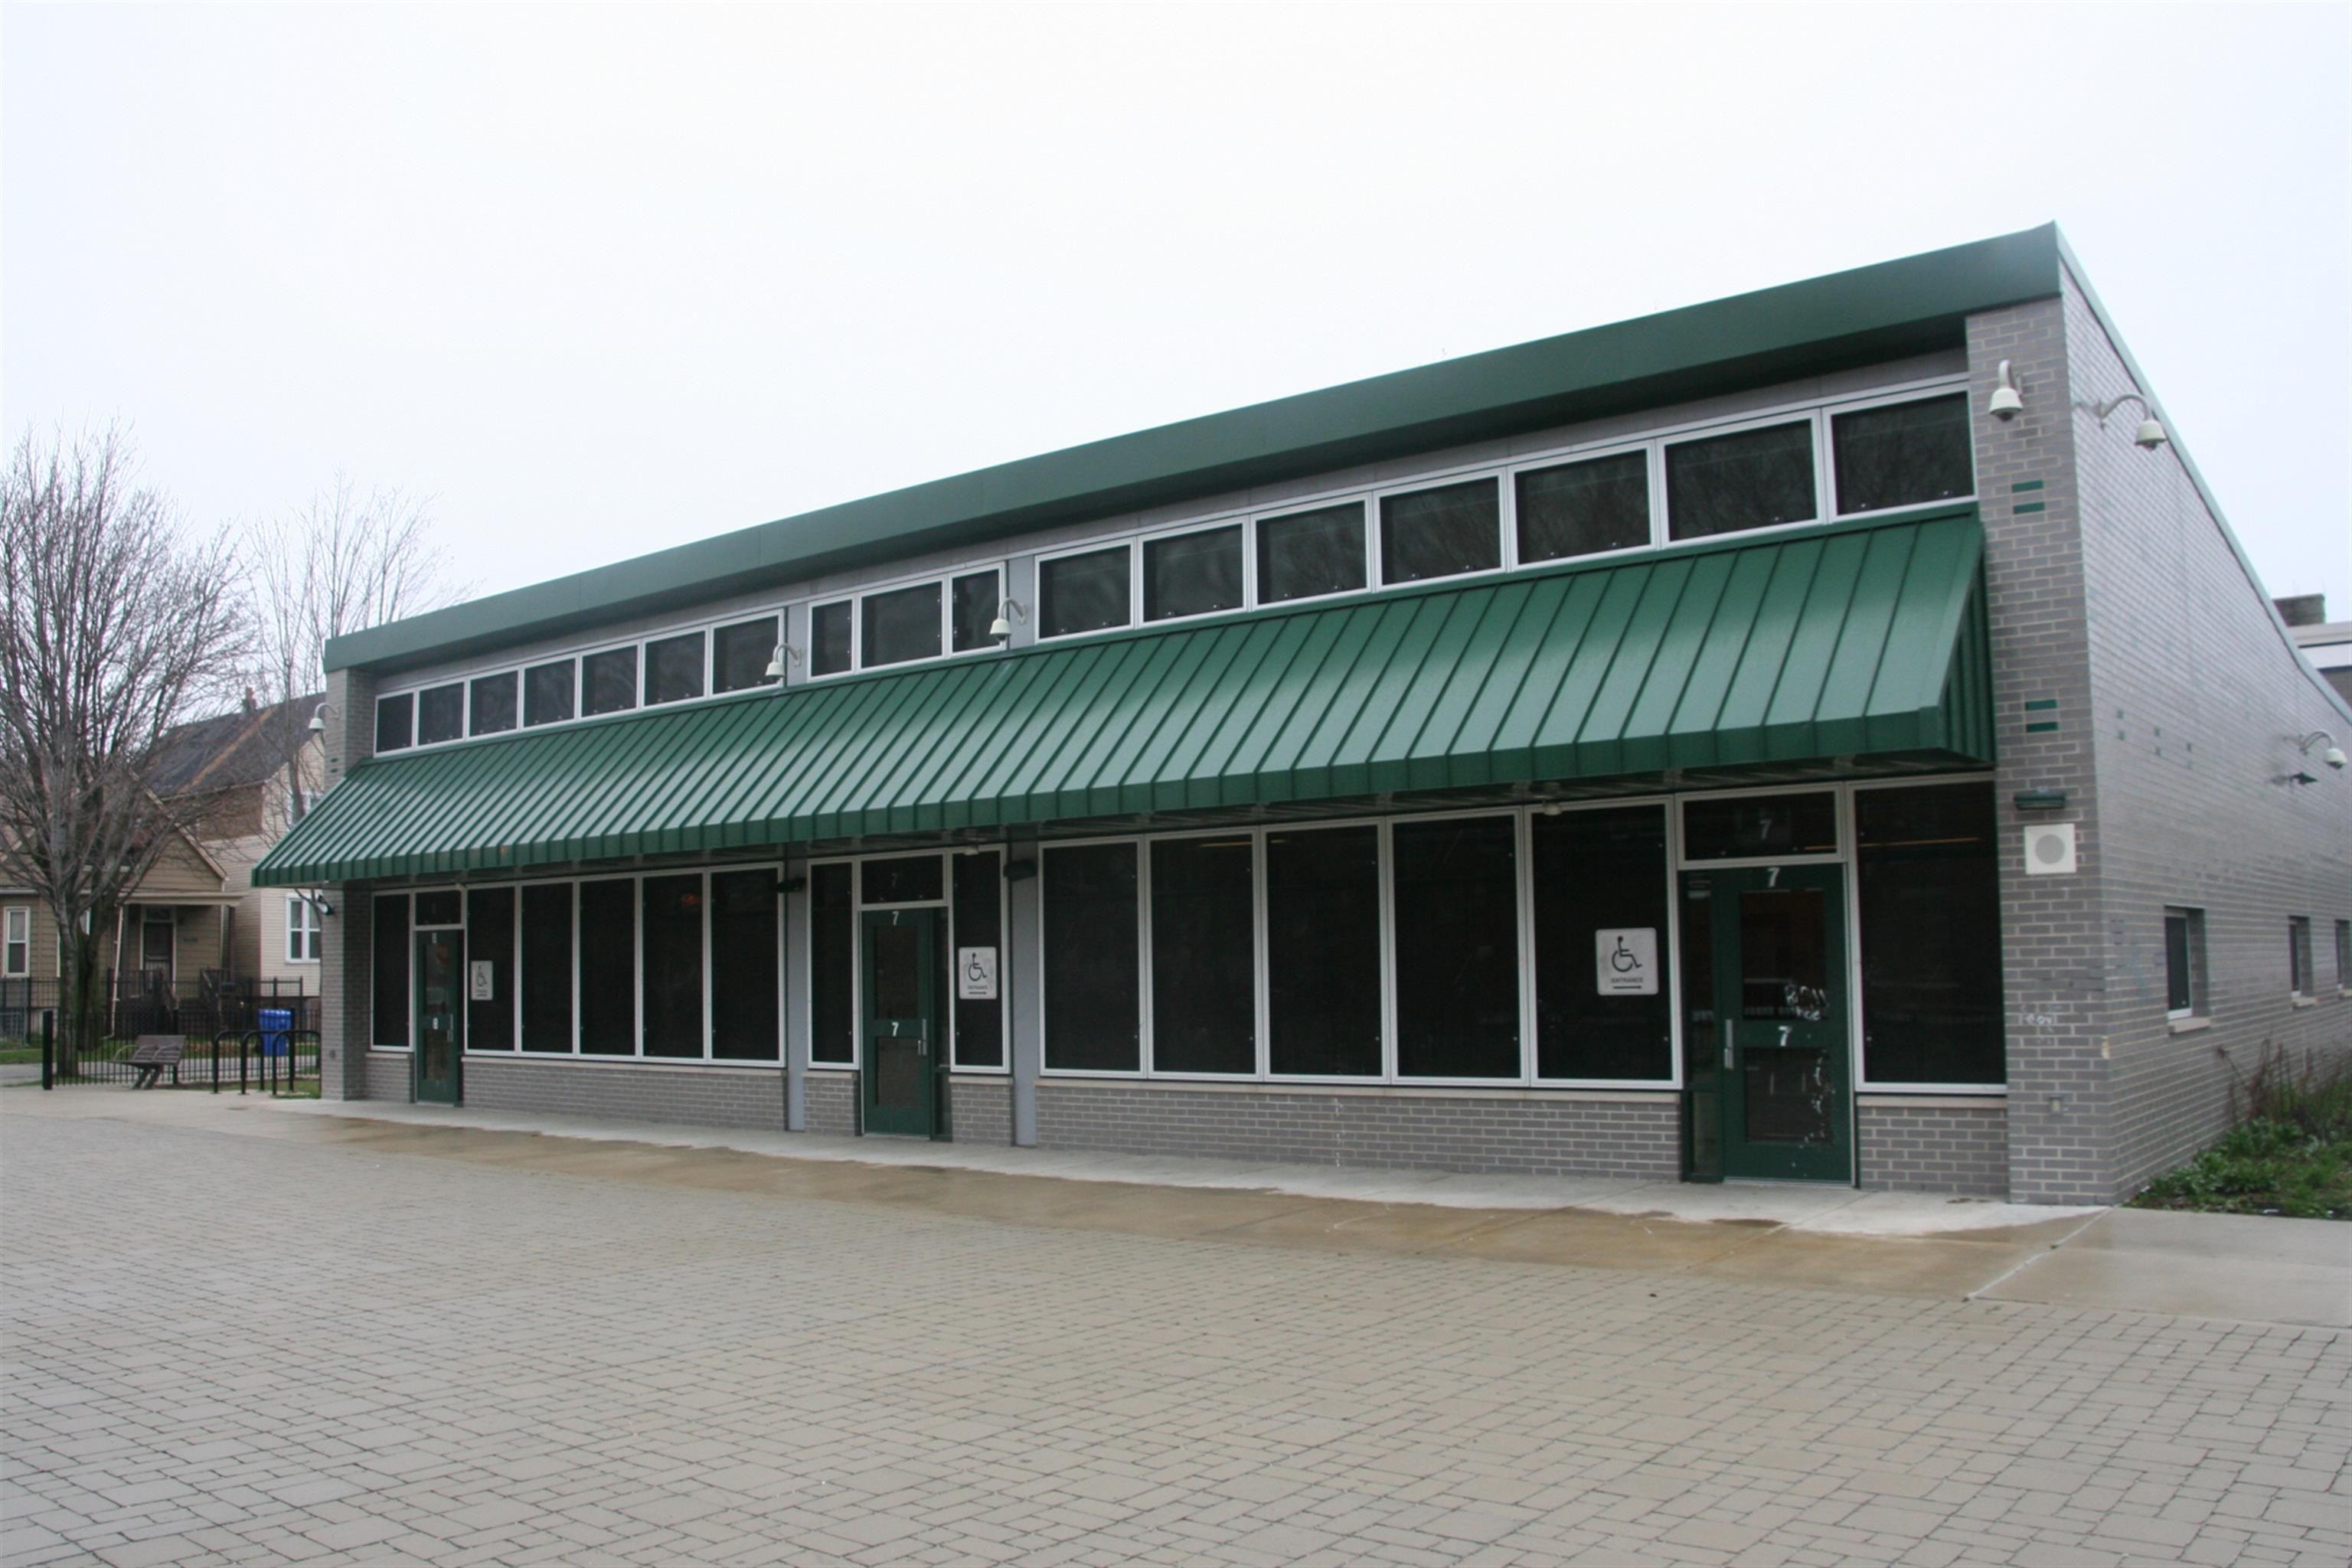 featured image Oliver Wendell Holmes Elementary School